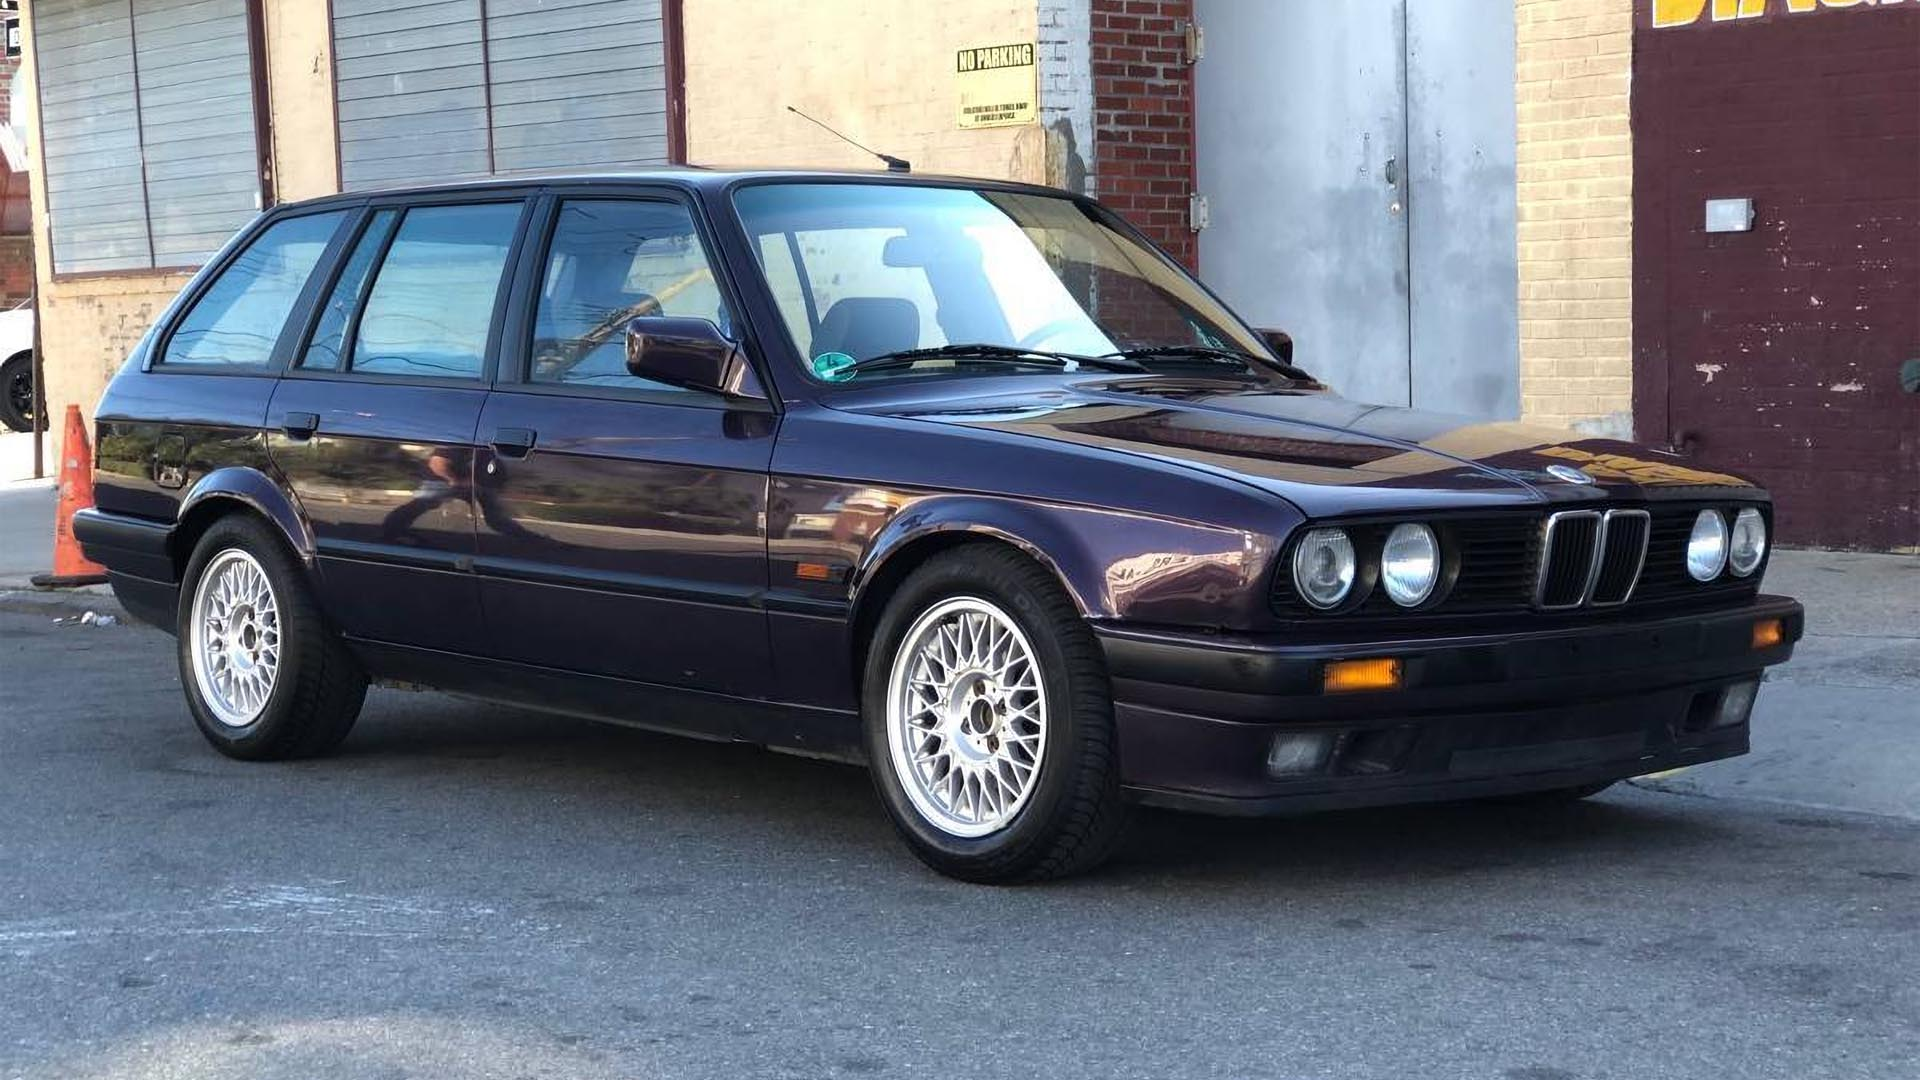 [Kicking Tires] The BMW E30 Touring That Almost Never Existed